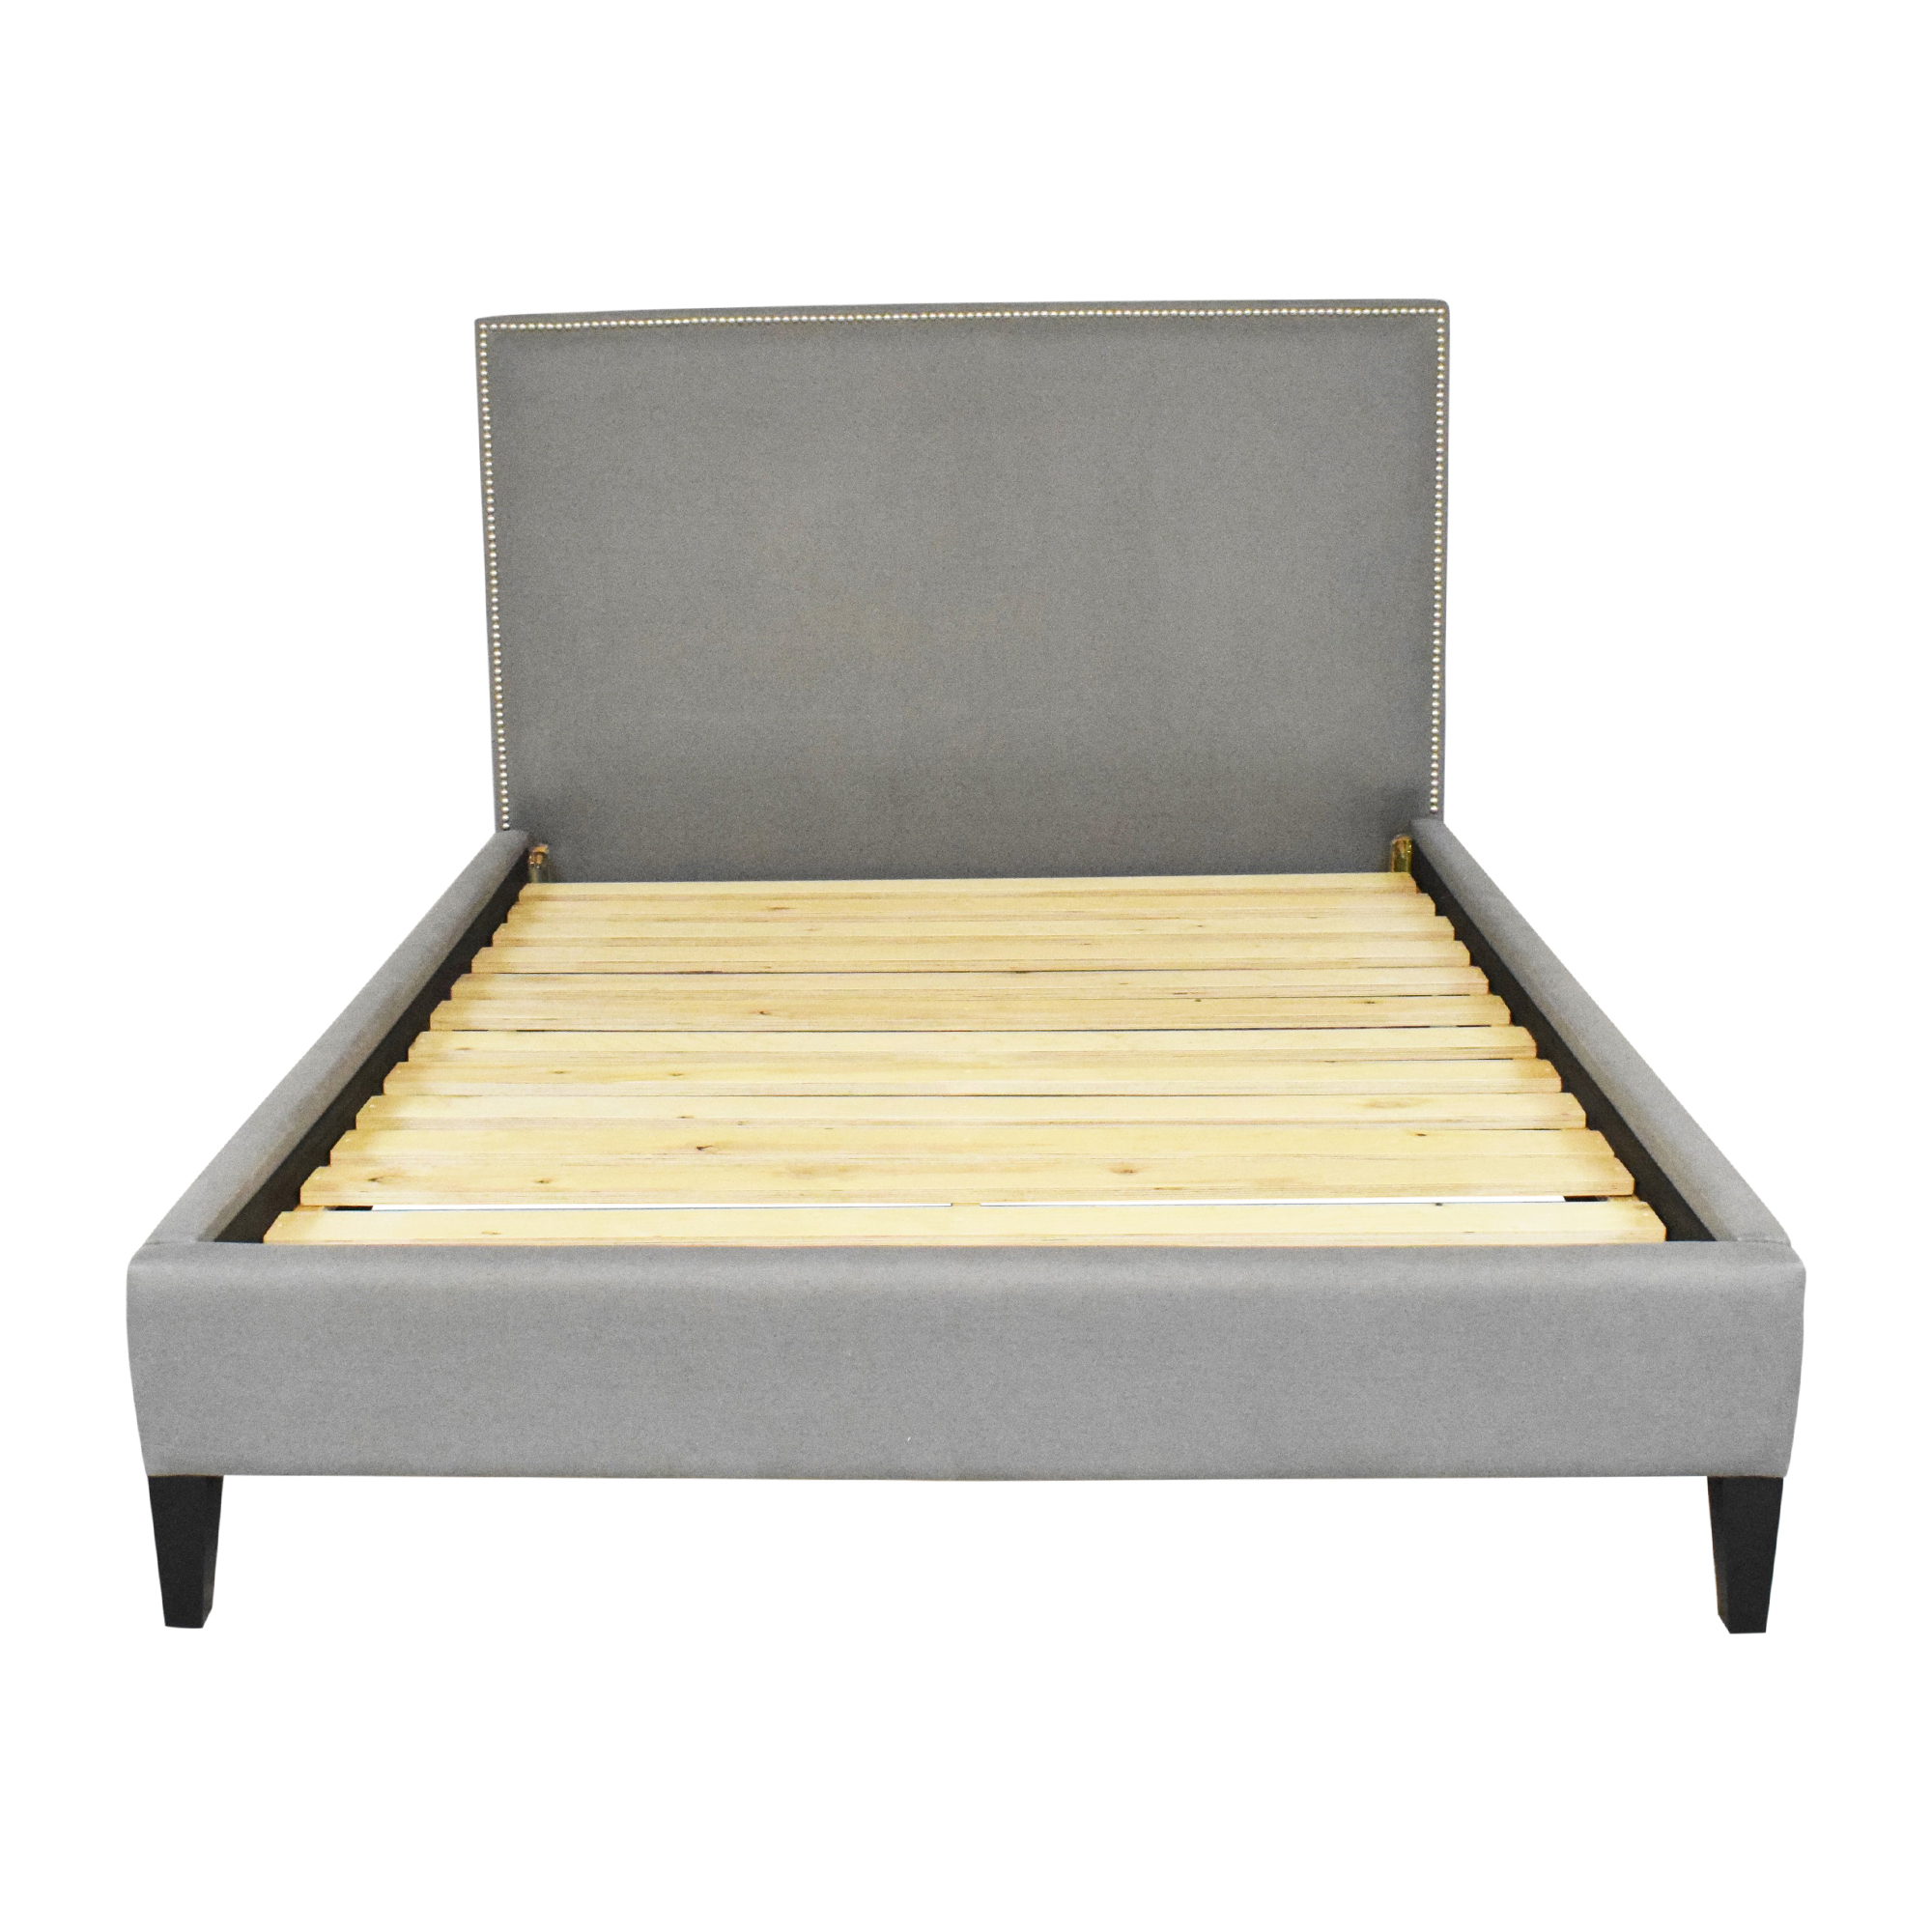 Crate & Barrel Cole Upholstered Queen Bed / Beds